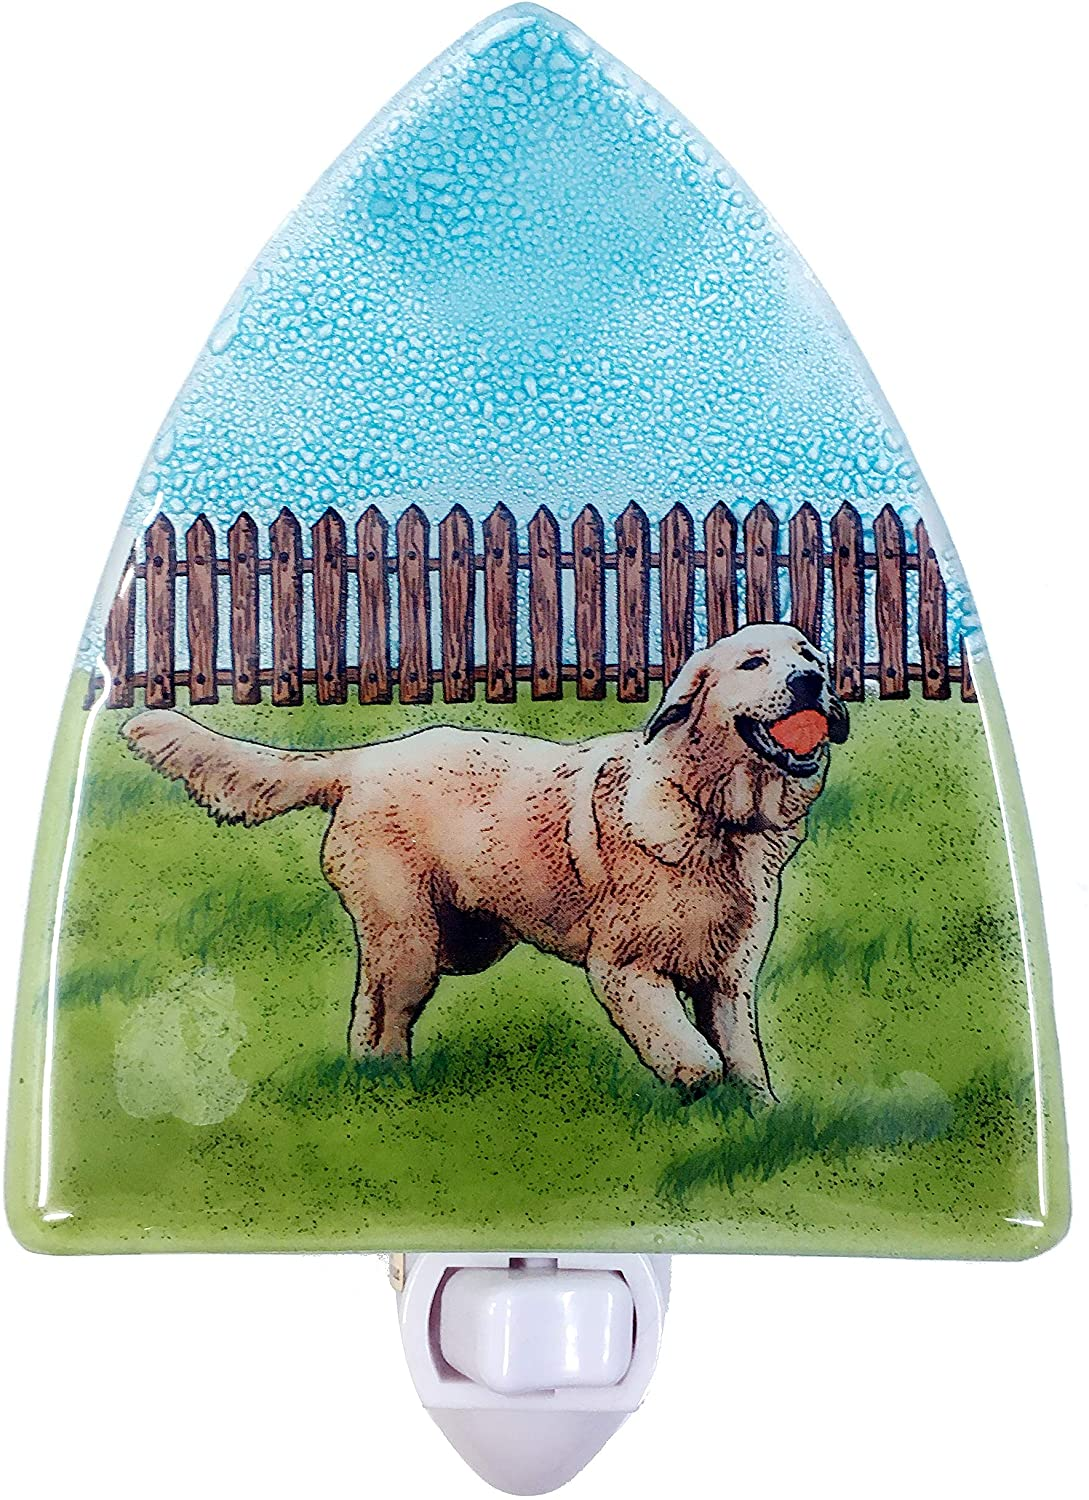 Golden Retriever Dog Glass Nightlight